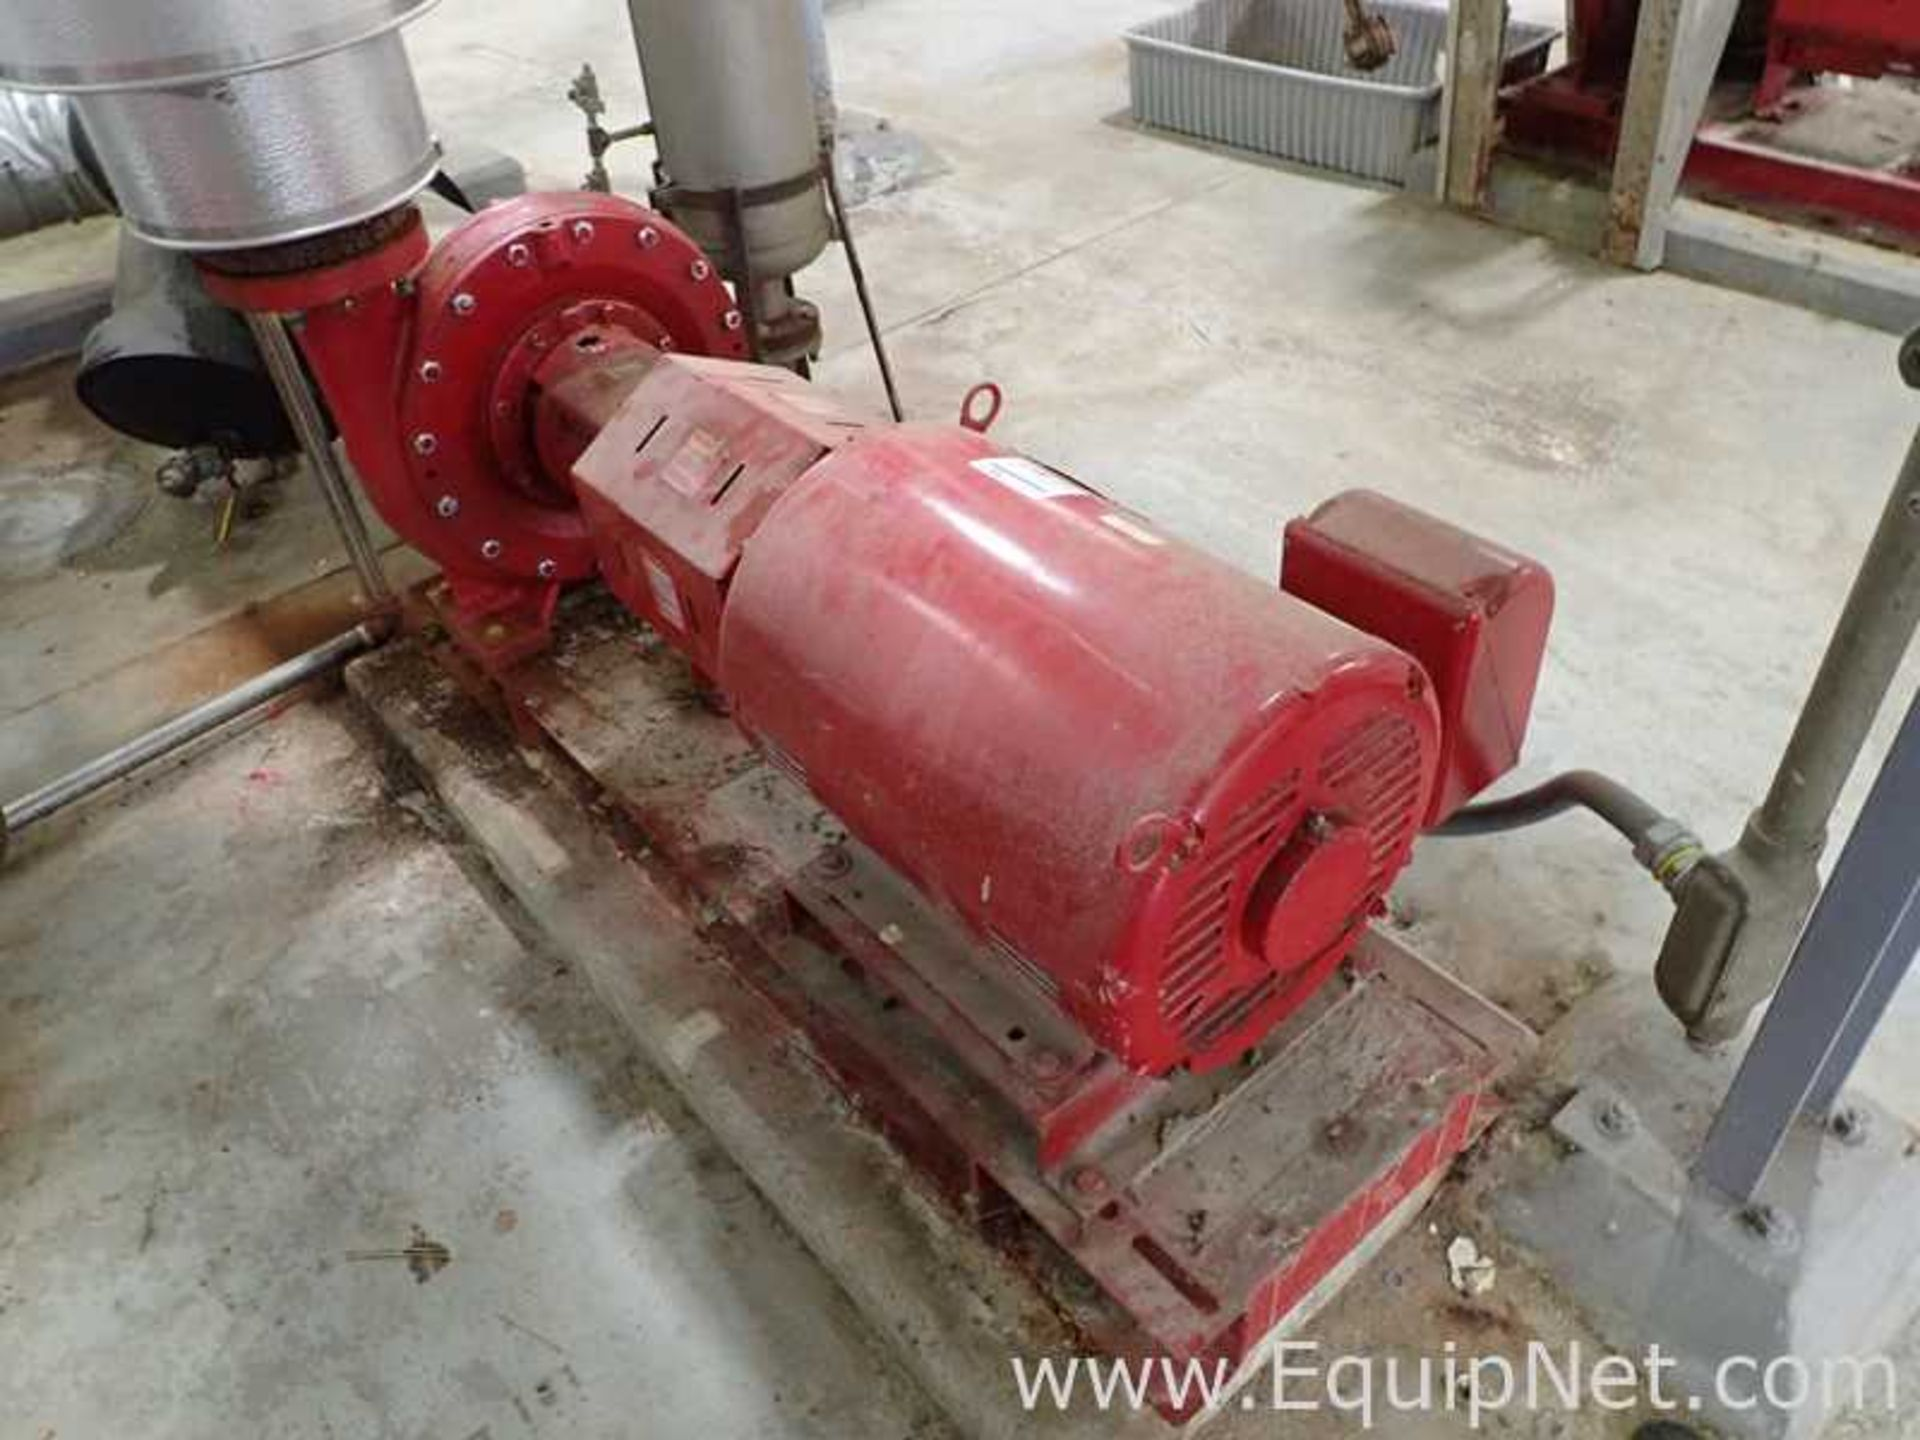 Lot of 2 Bell and Gossett e-1510 25 HP Centrifugal Pumps - Image 3 of 11